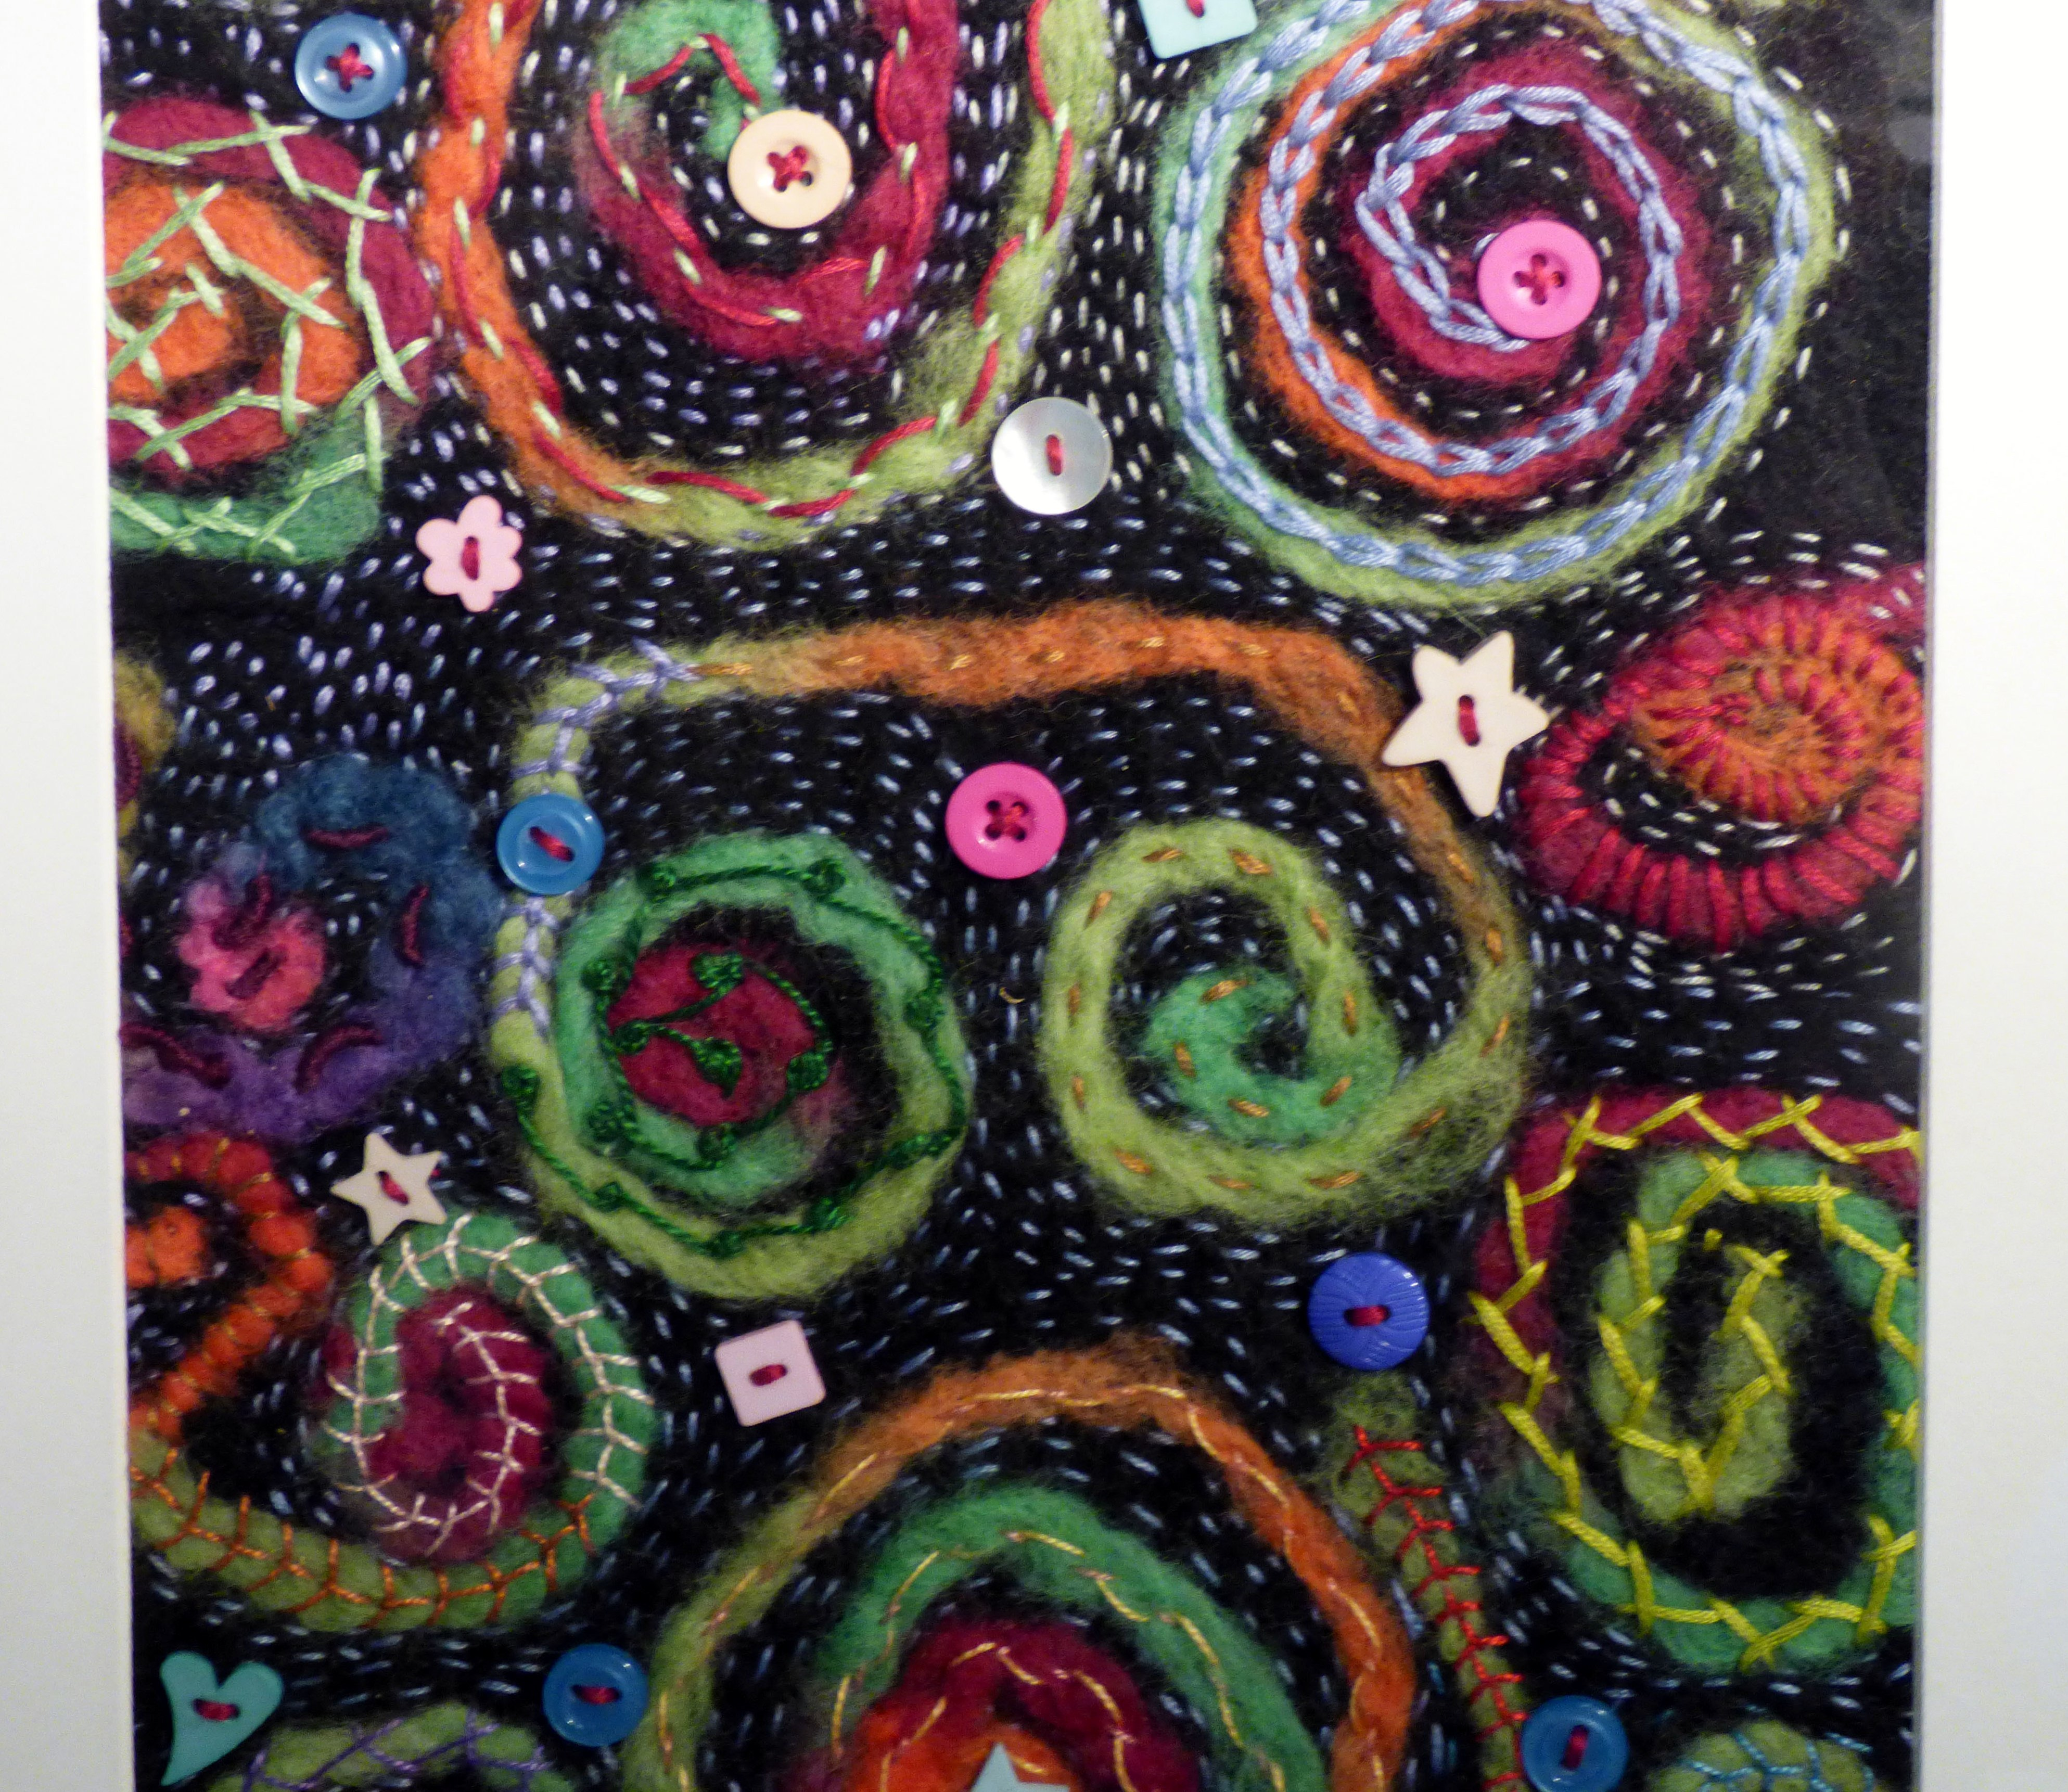 SPIRALLING OUT OF CONTROL by Yvonne Hunt, felt embellished with couching and buttons